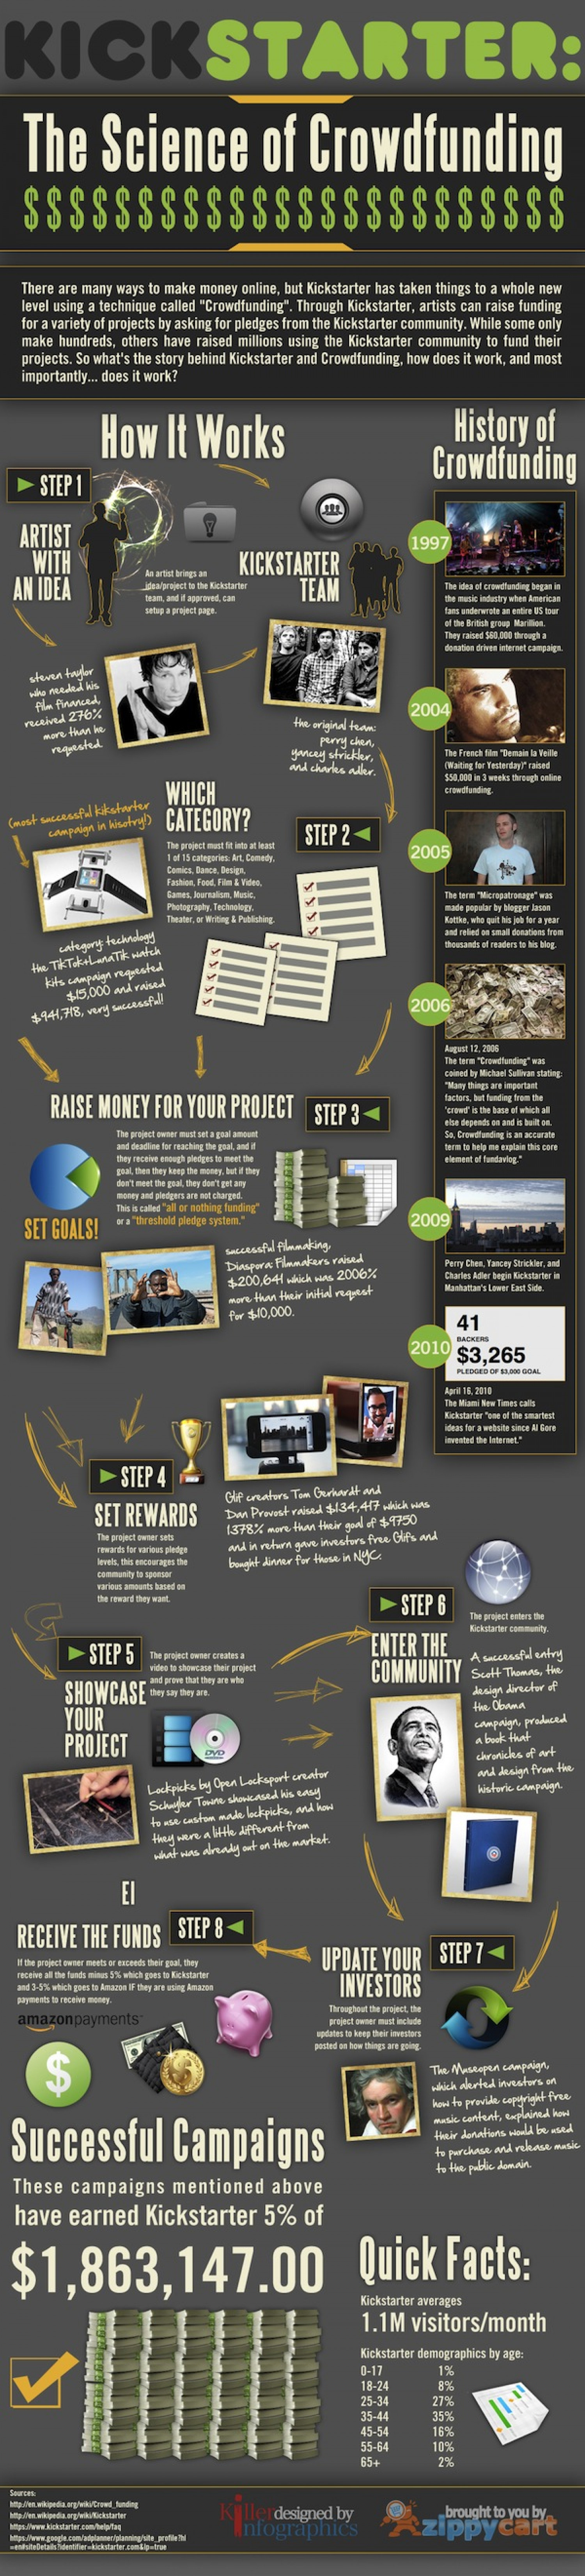 Kickstarter the Science of Crowdfunding Infographic